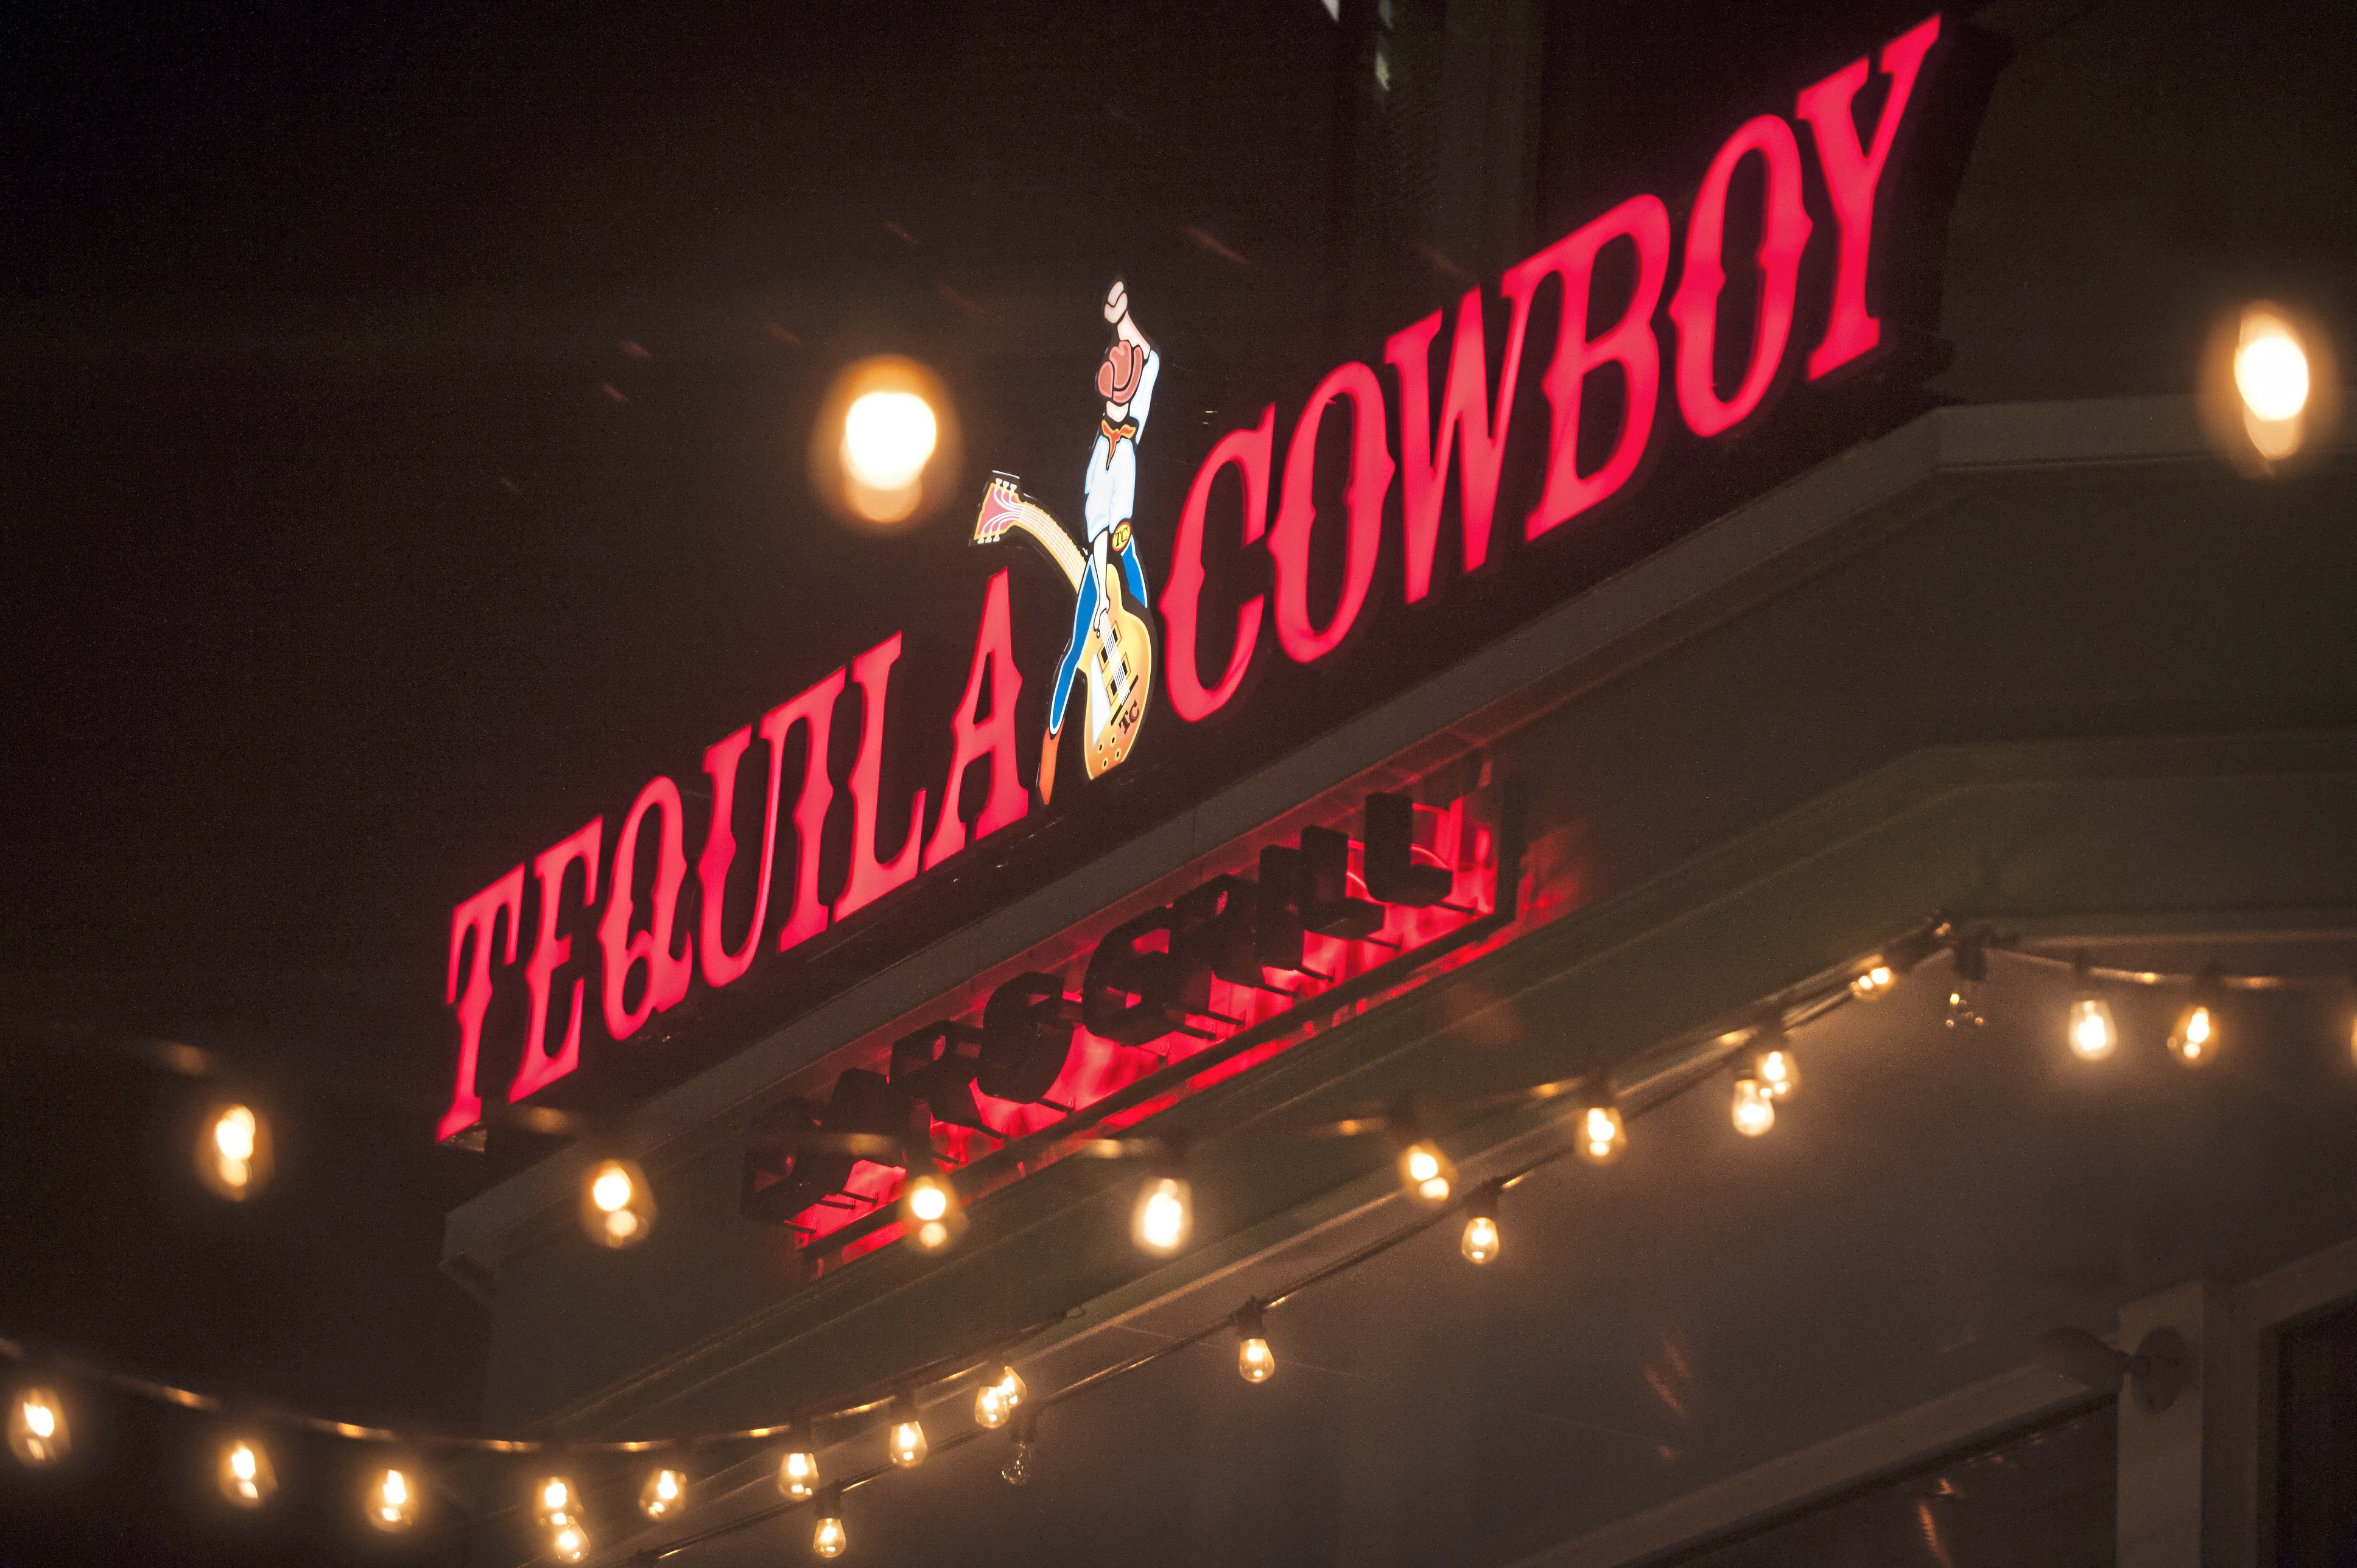 """20180107smsTequila02-1 Lights shine at the entryway for Tequila Cowboy on Sunday, Jan. 7, 2018 along the North Shore by Heinz Field. On New Years Eve, Steelers offensive coordinator Todd Haley injured his hip and was escorted out of the bar after his wife Christine Haley was in a """"minor scuffle"""" at the establishment. (Stephanie Strasburg/Post-Gazette)"""